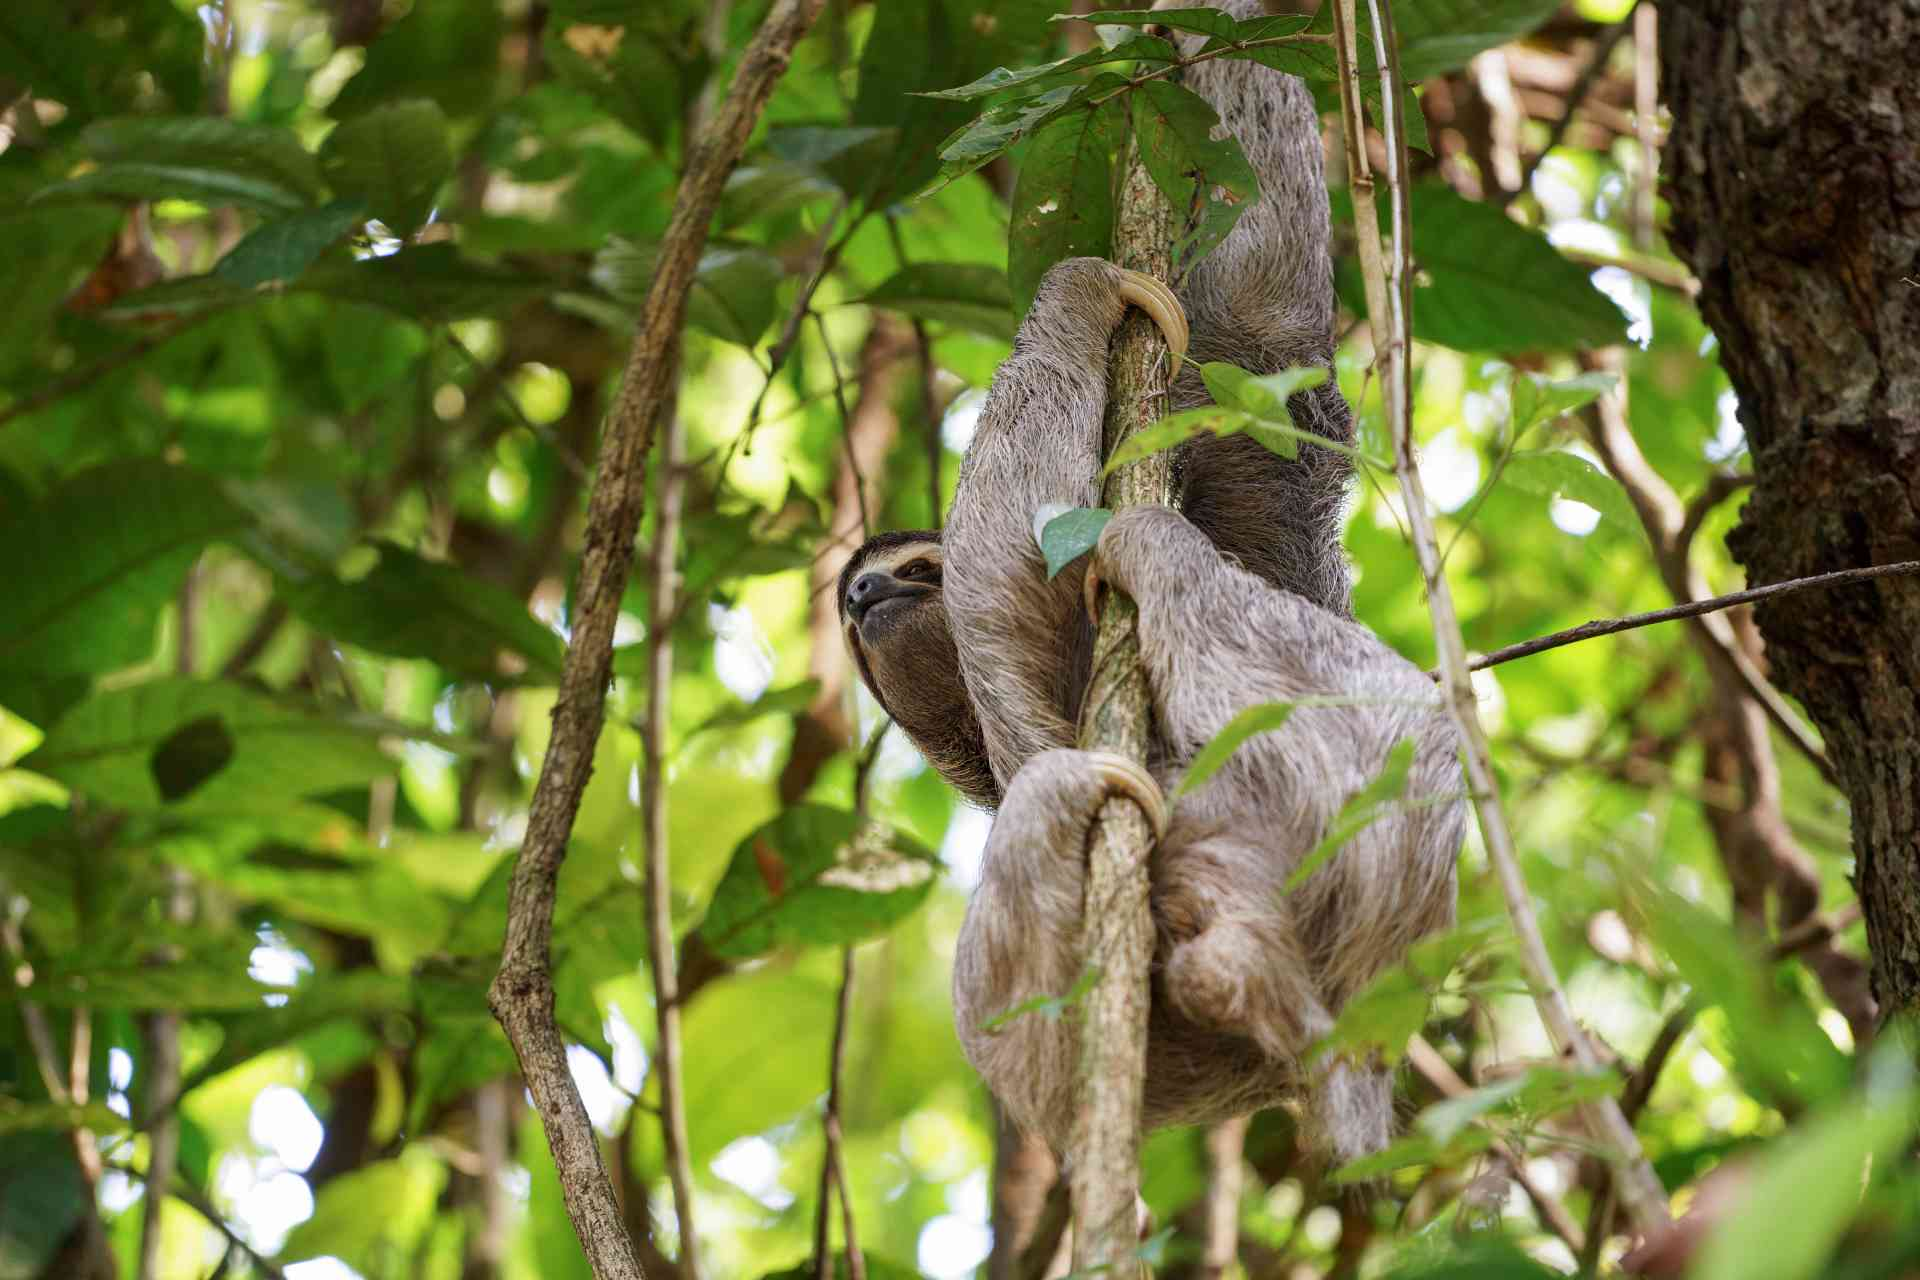 A sloth in Manuel Antonio National Park, Costa Rica by Vikramjeet Singh